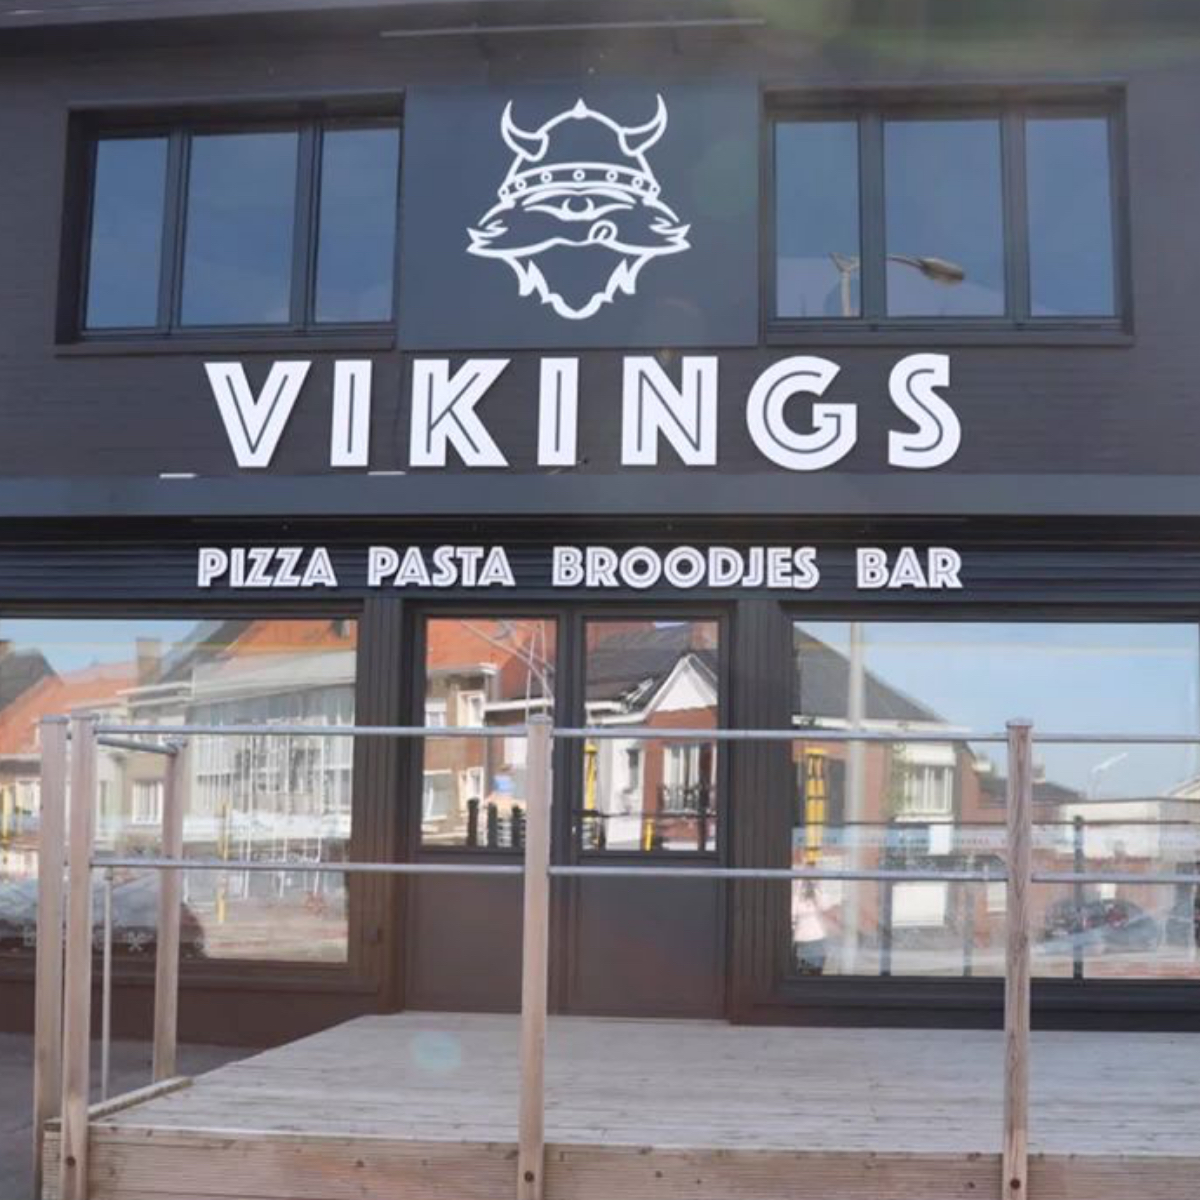 Vikings pizza & pasta